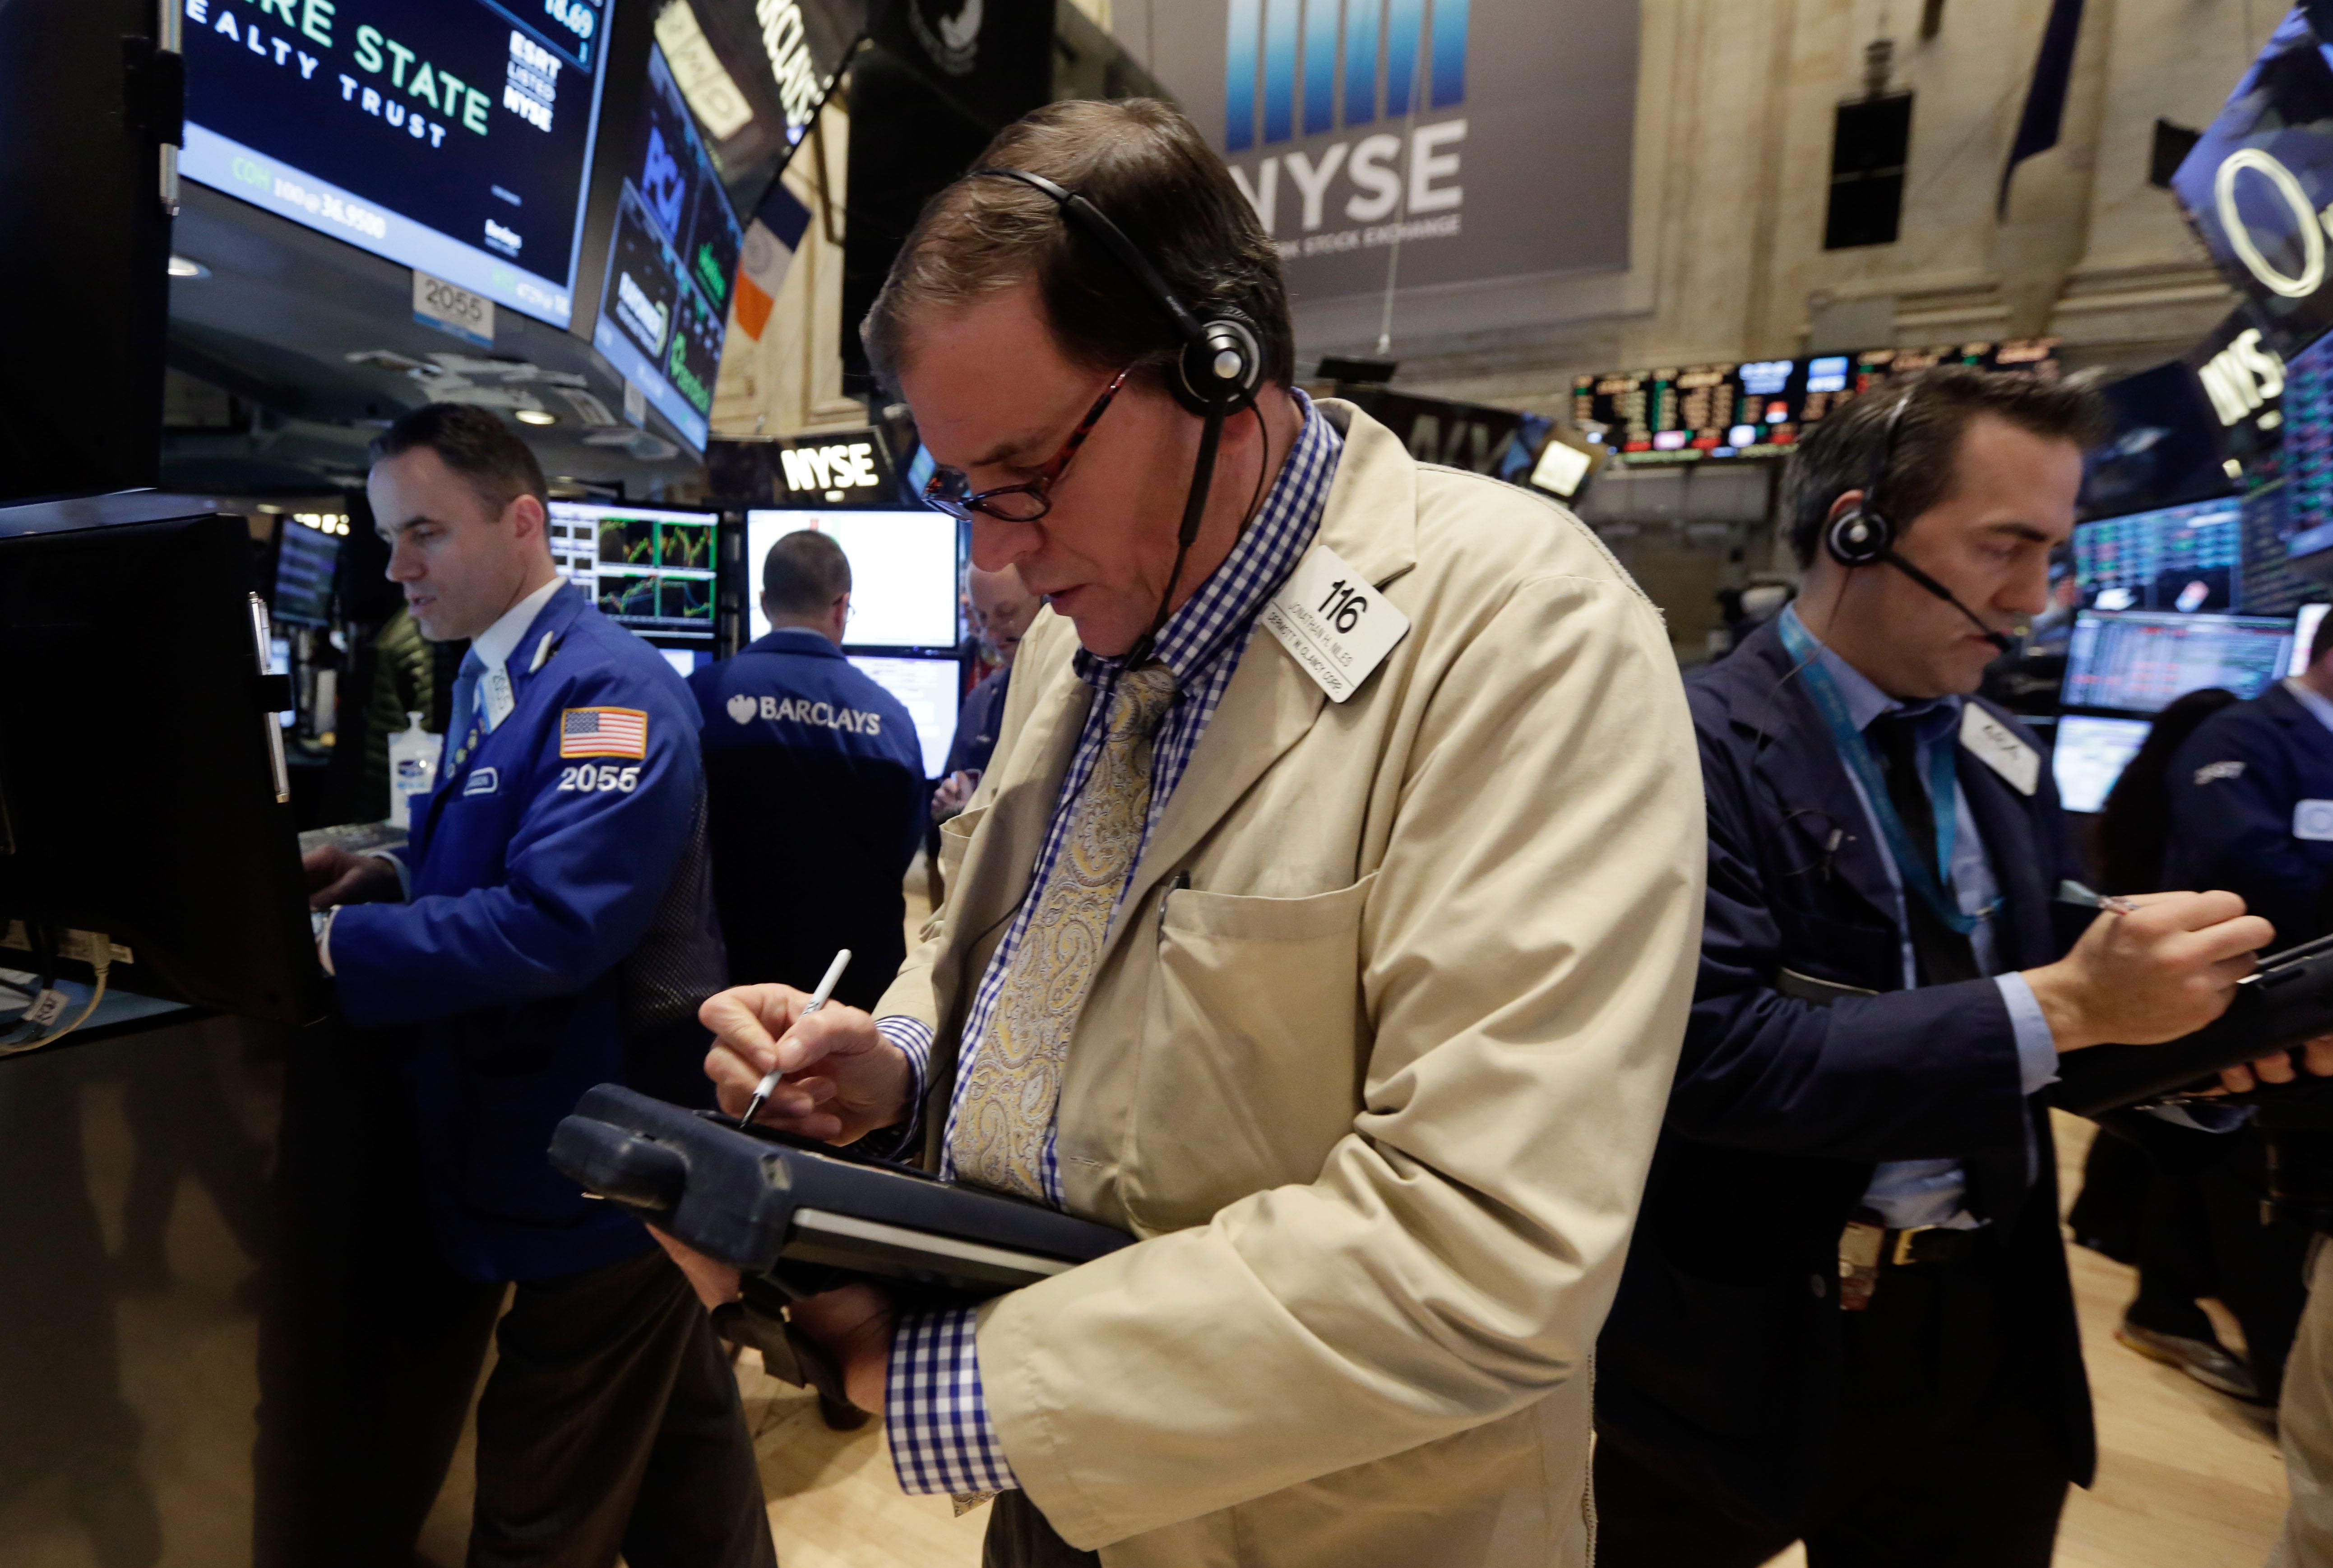 Global stocks hit by oil plunge, Fed mention of rate hike